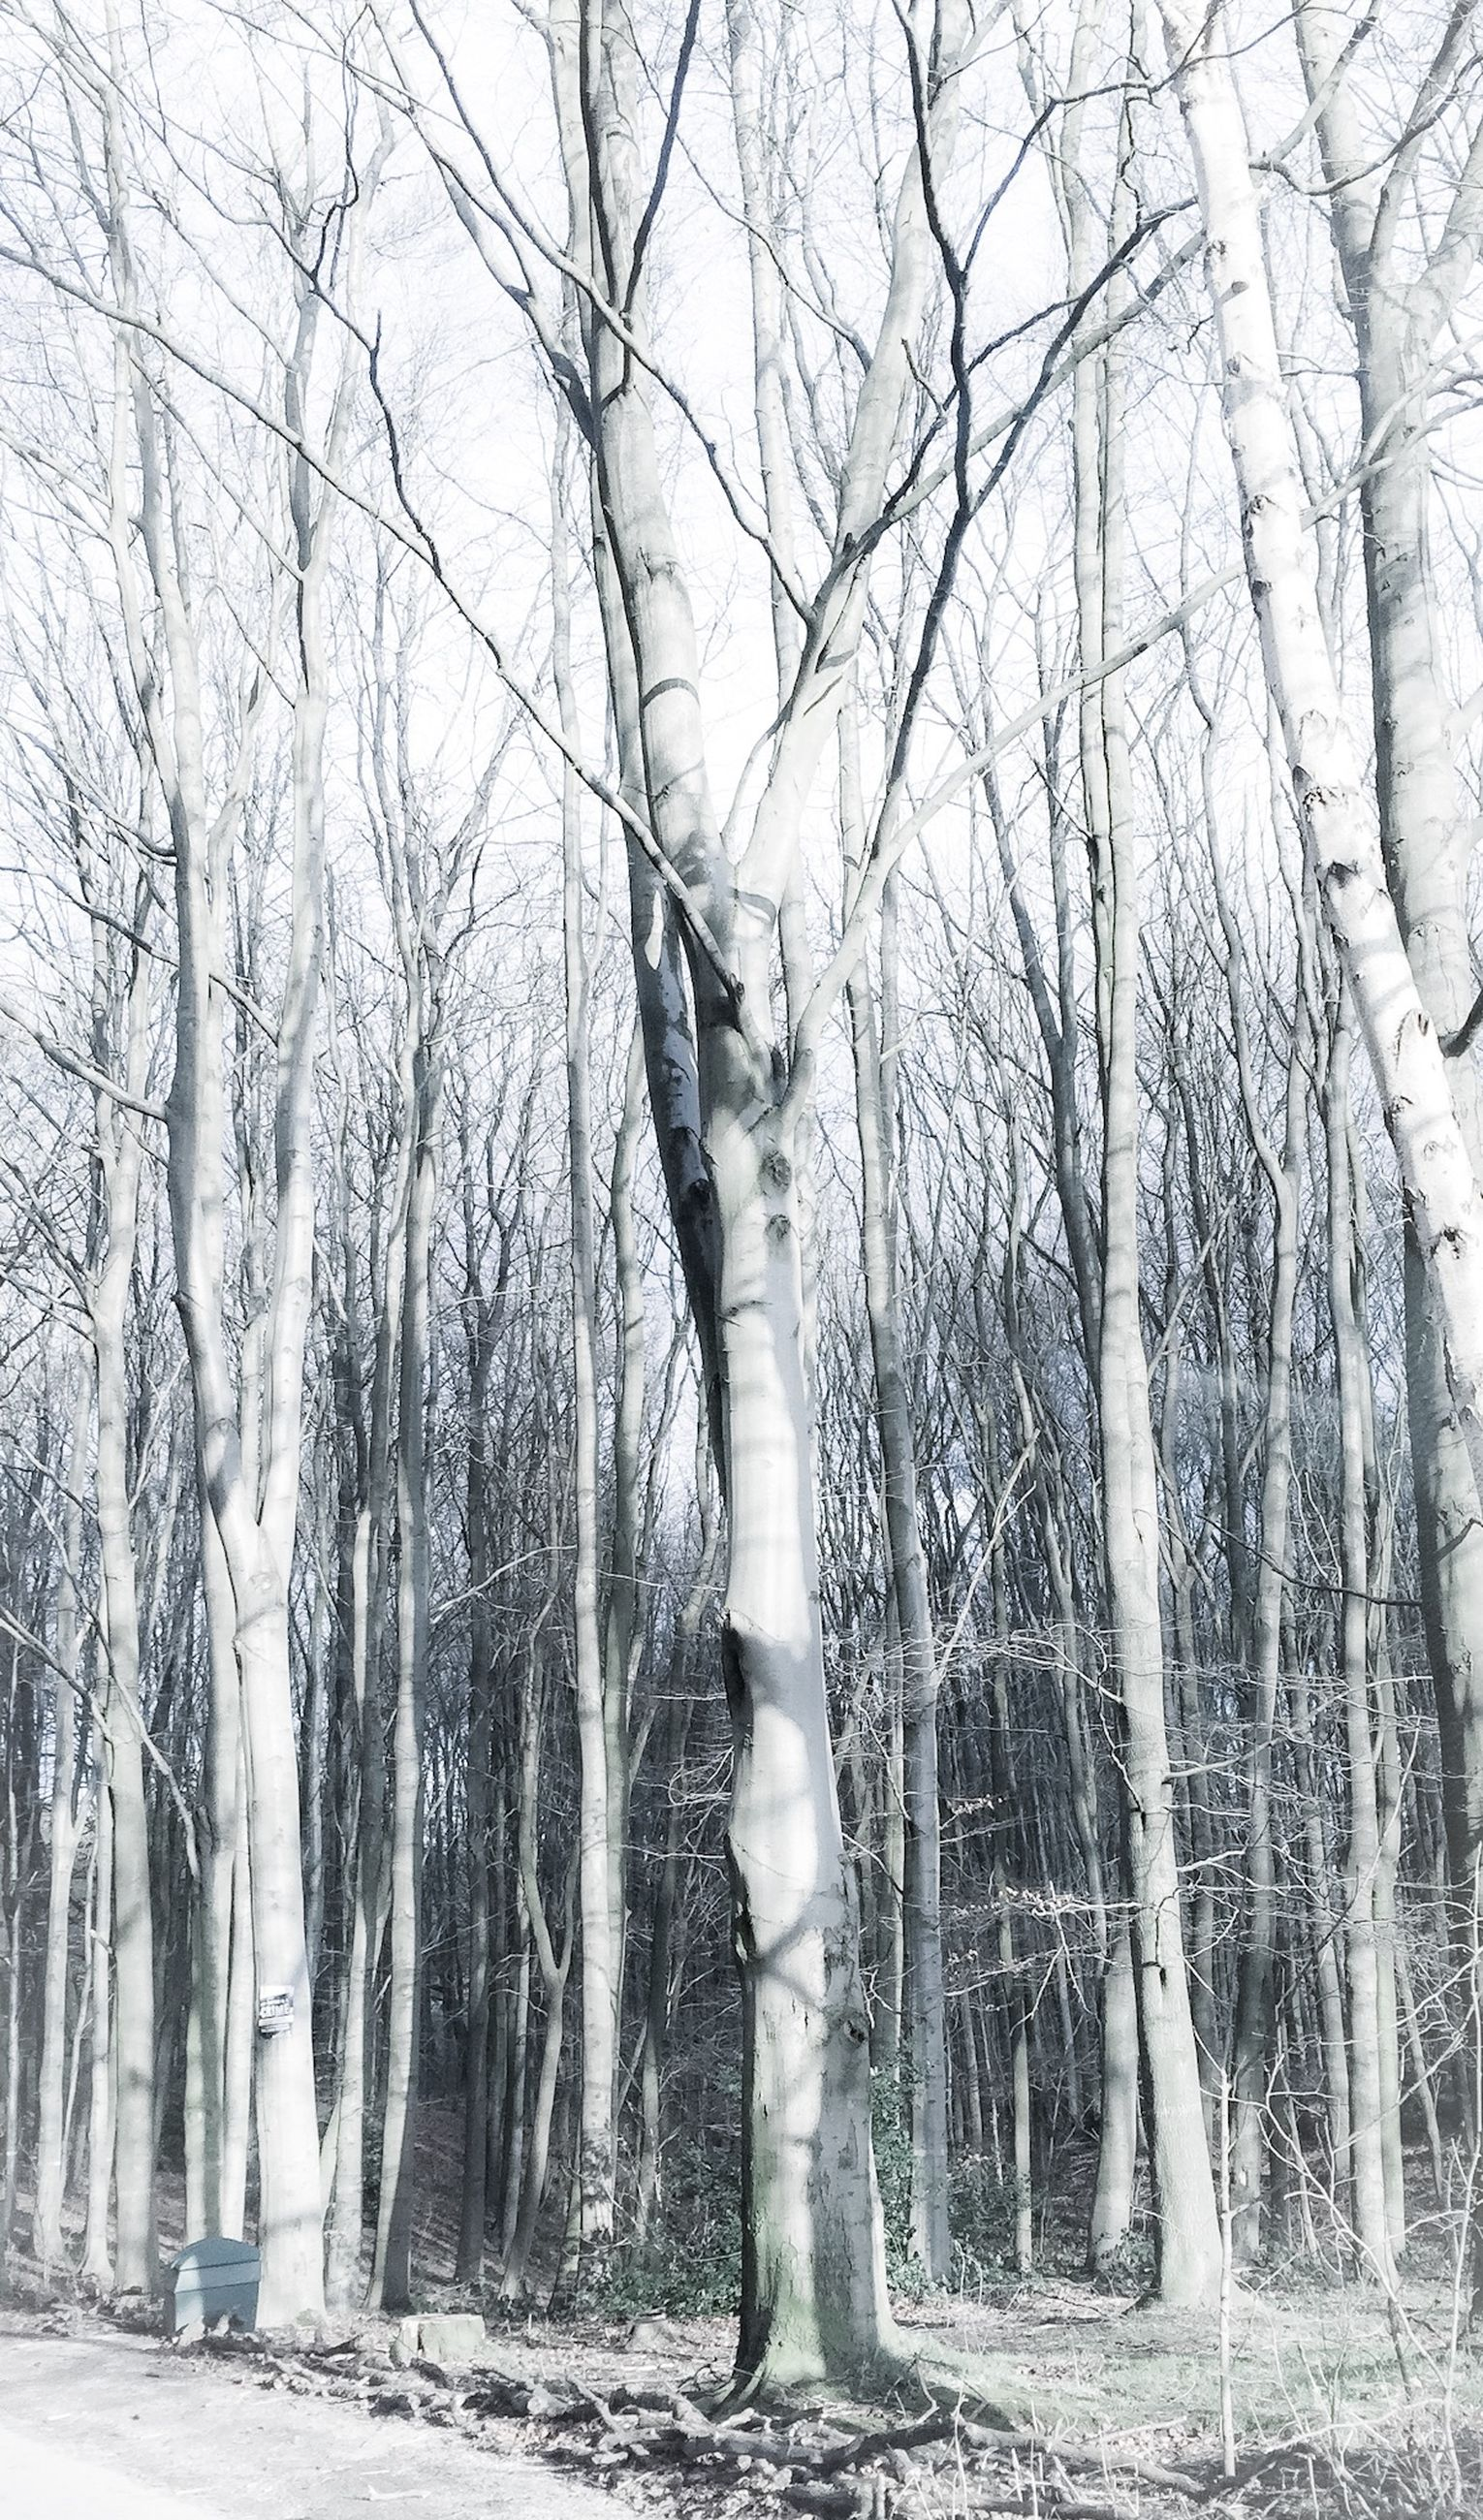 tree, tree trunk, bare tree, tranquility, winter, branch, nature, cold temperature, tranquil scene, snow, forest, woodland, growth, scenics, beauty in nature, season, low angle view, outdoors, day, park - man made space